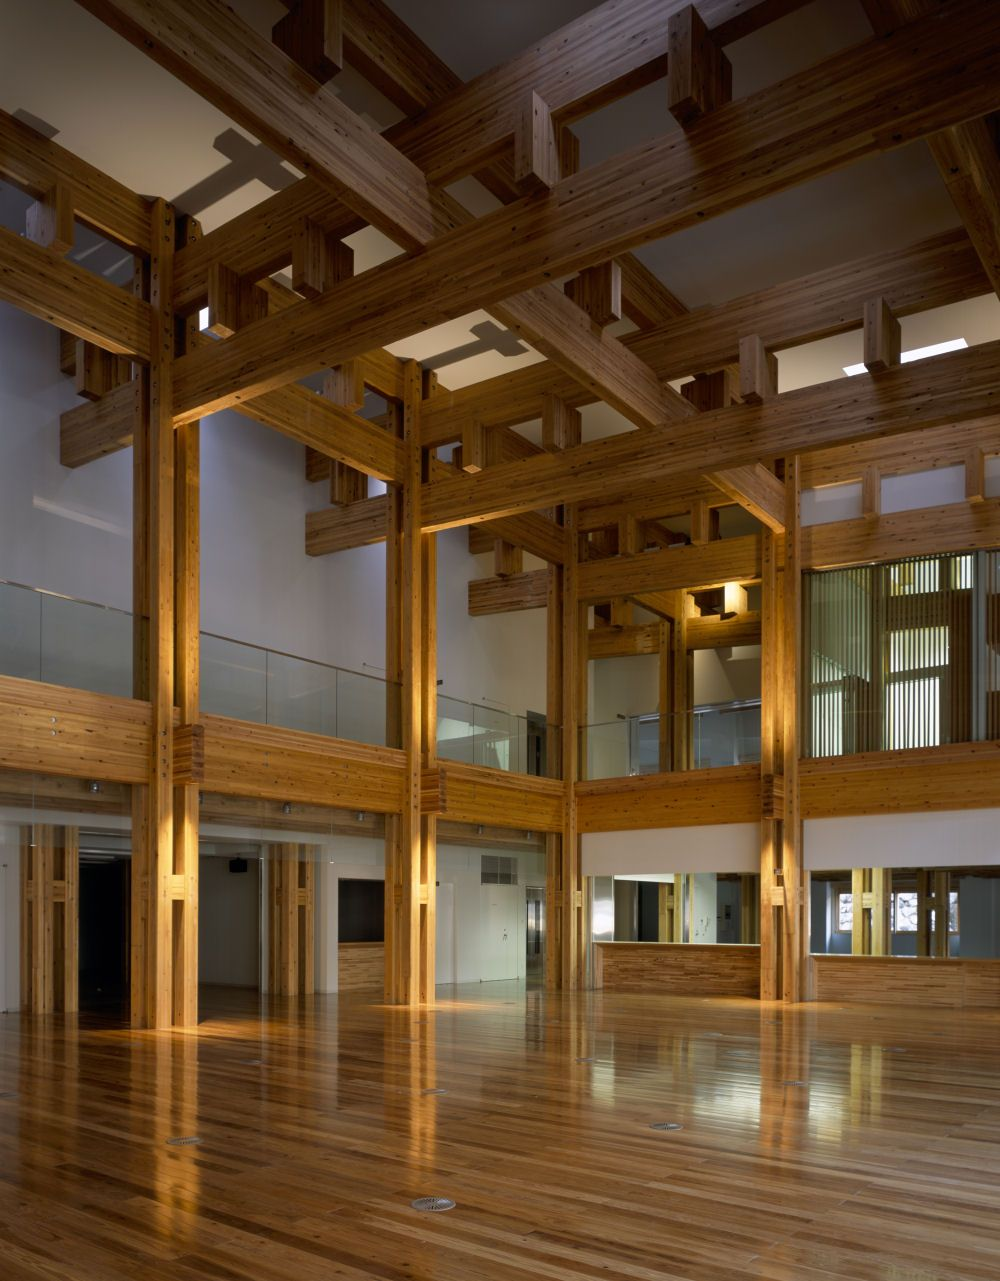 Kengo kuma associates yusuhara town hall pinterest for Japanese indoor design